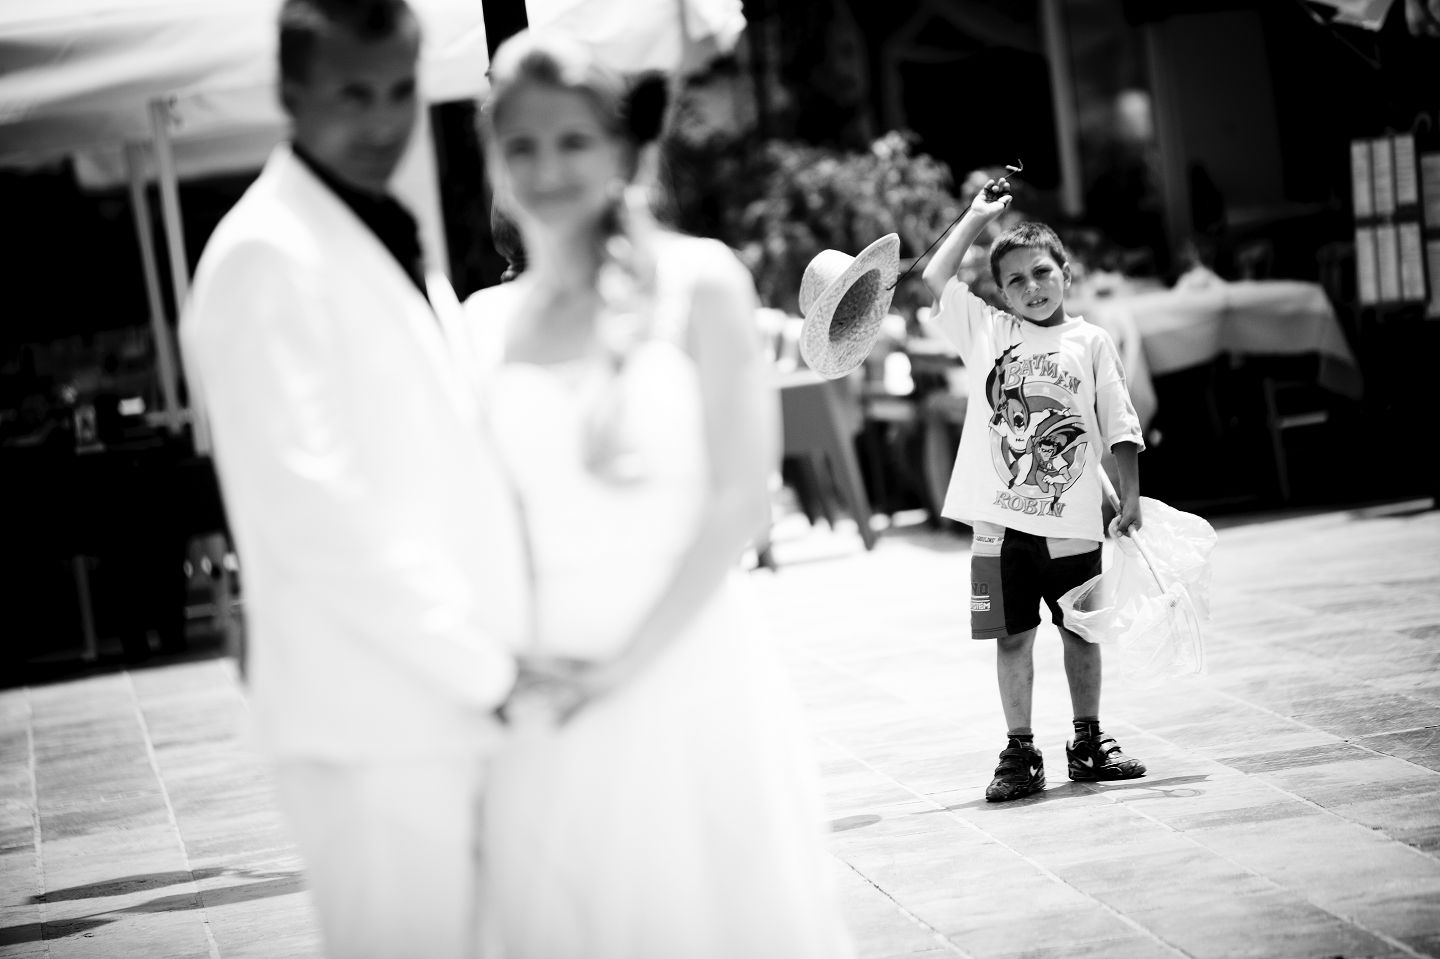 greece-lefkada-wedding-natalija-vasja-44